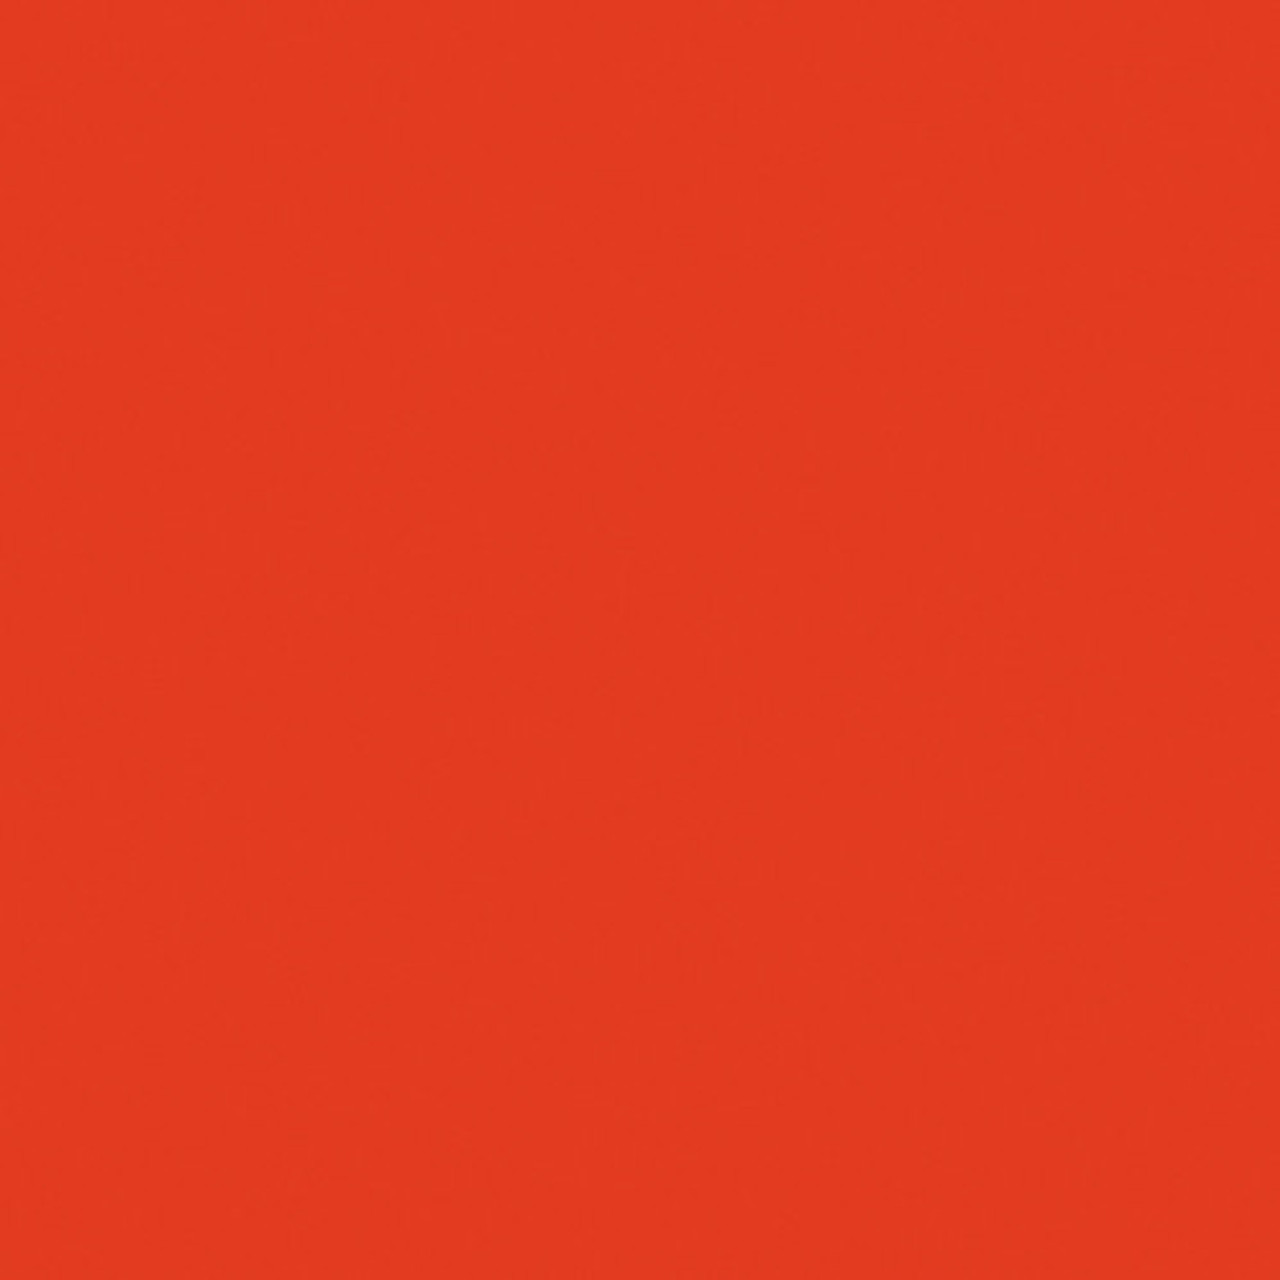 #4690 Rosco Gels Roscolux CalColor 90 Red, 20x24""